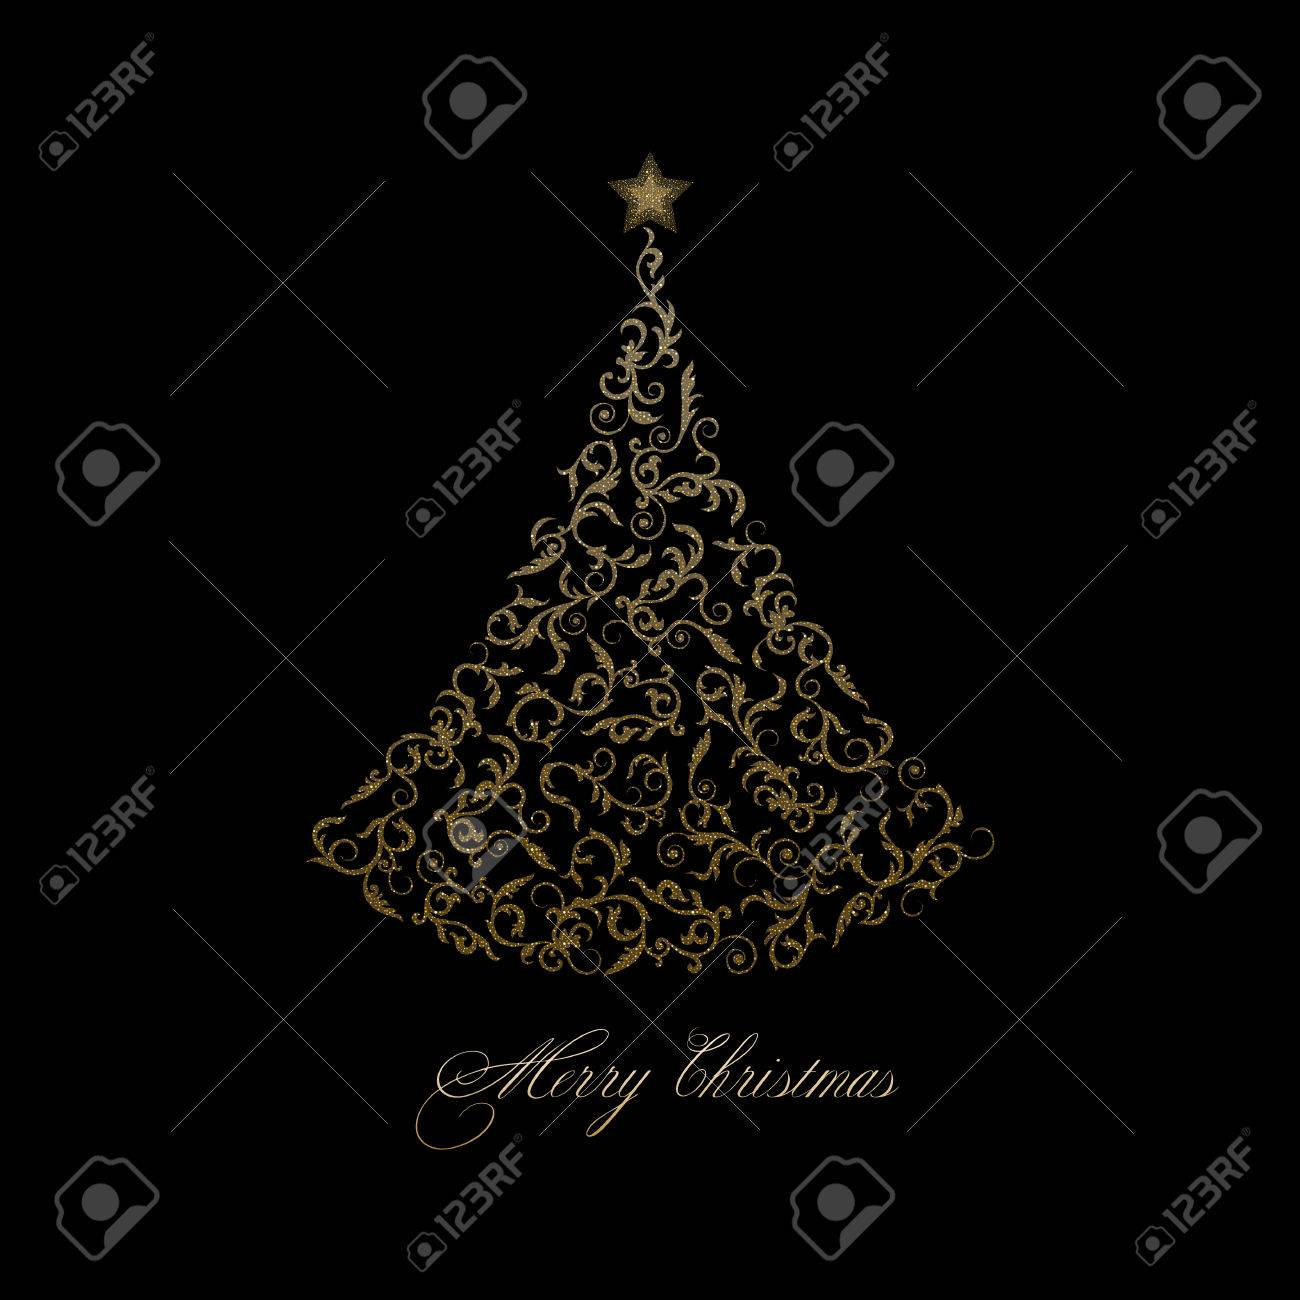 Golden Tree With Star On A Black Background Ornamental Christmas Royalty Free Cliparts Vectors And Stock Illustration Image 67664324